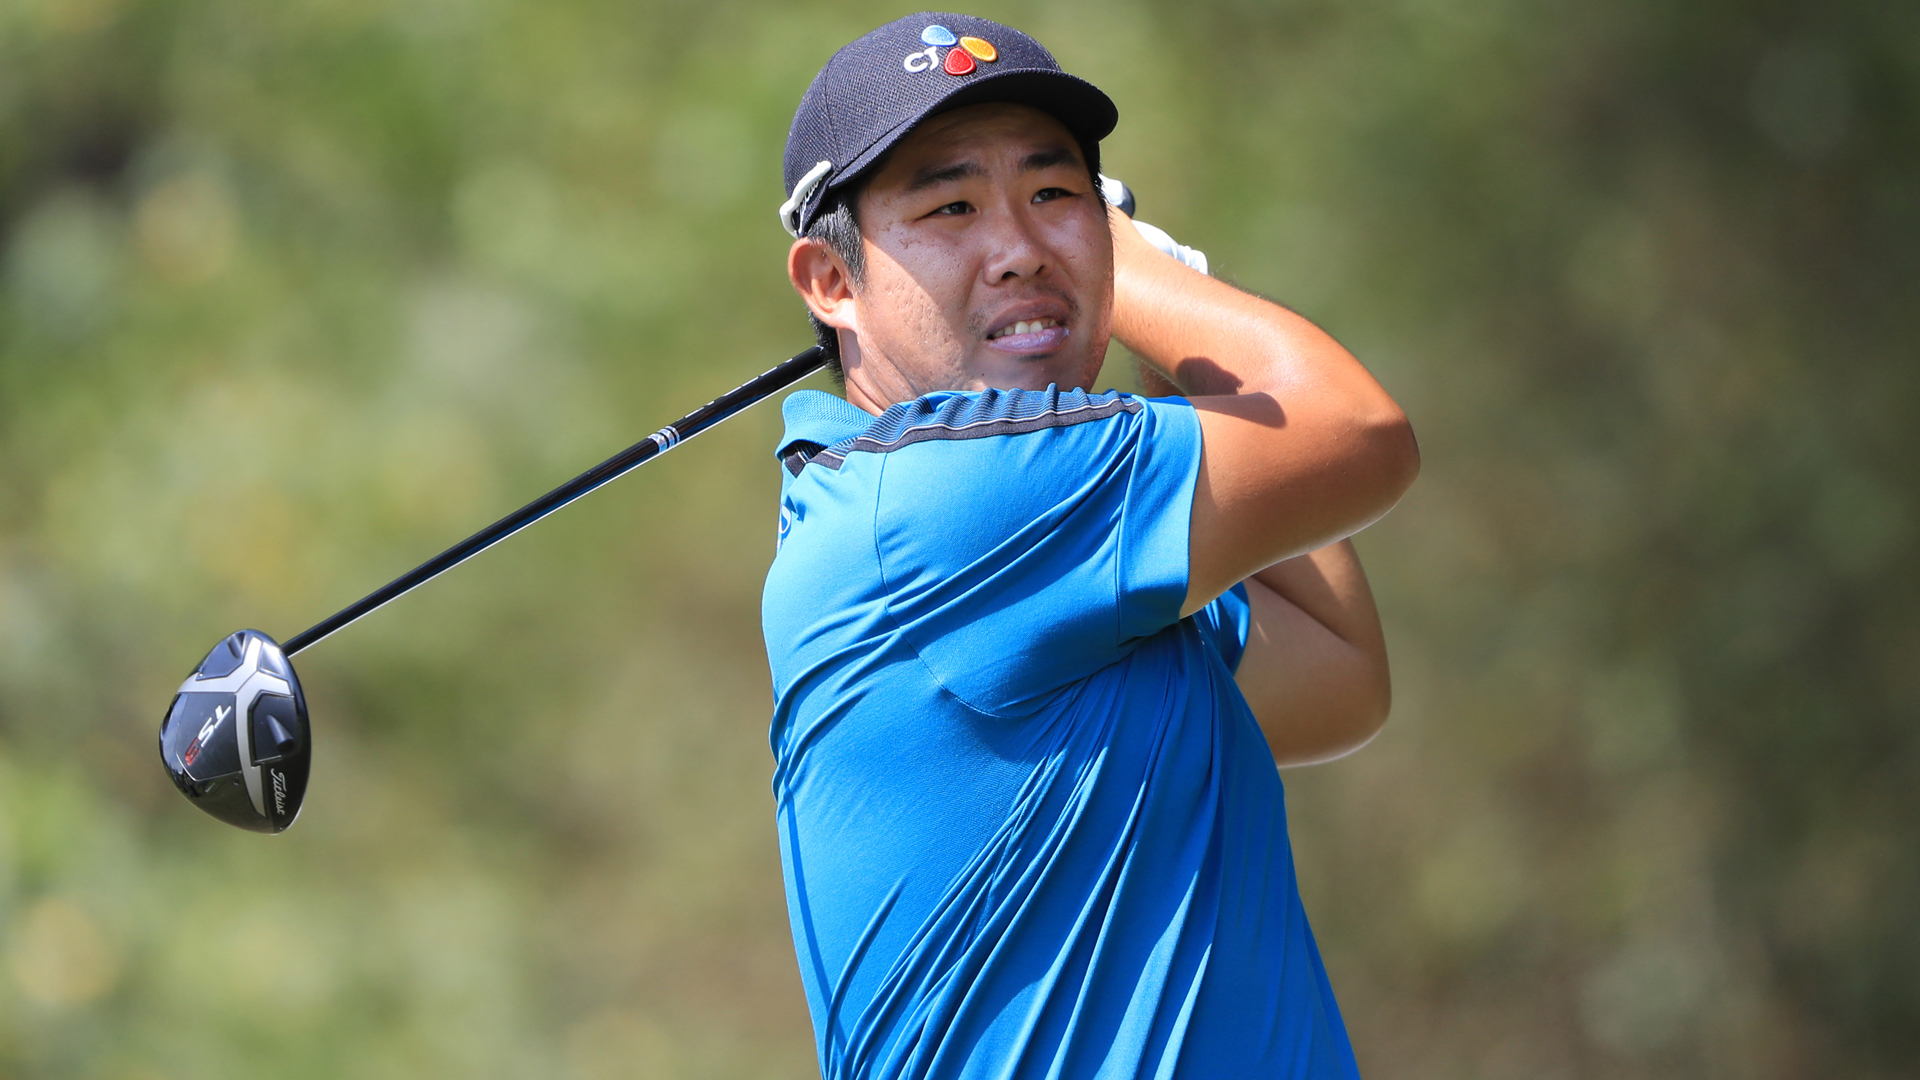 Sanderson Farms Championship: Byeong Hun An fires another 66 to lead after 2 rounds